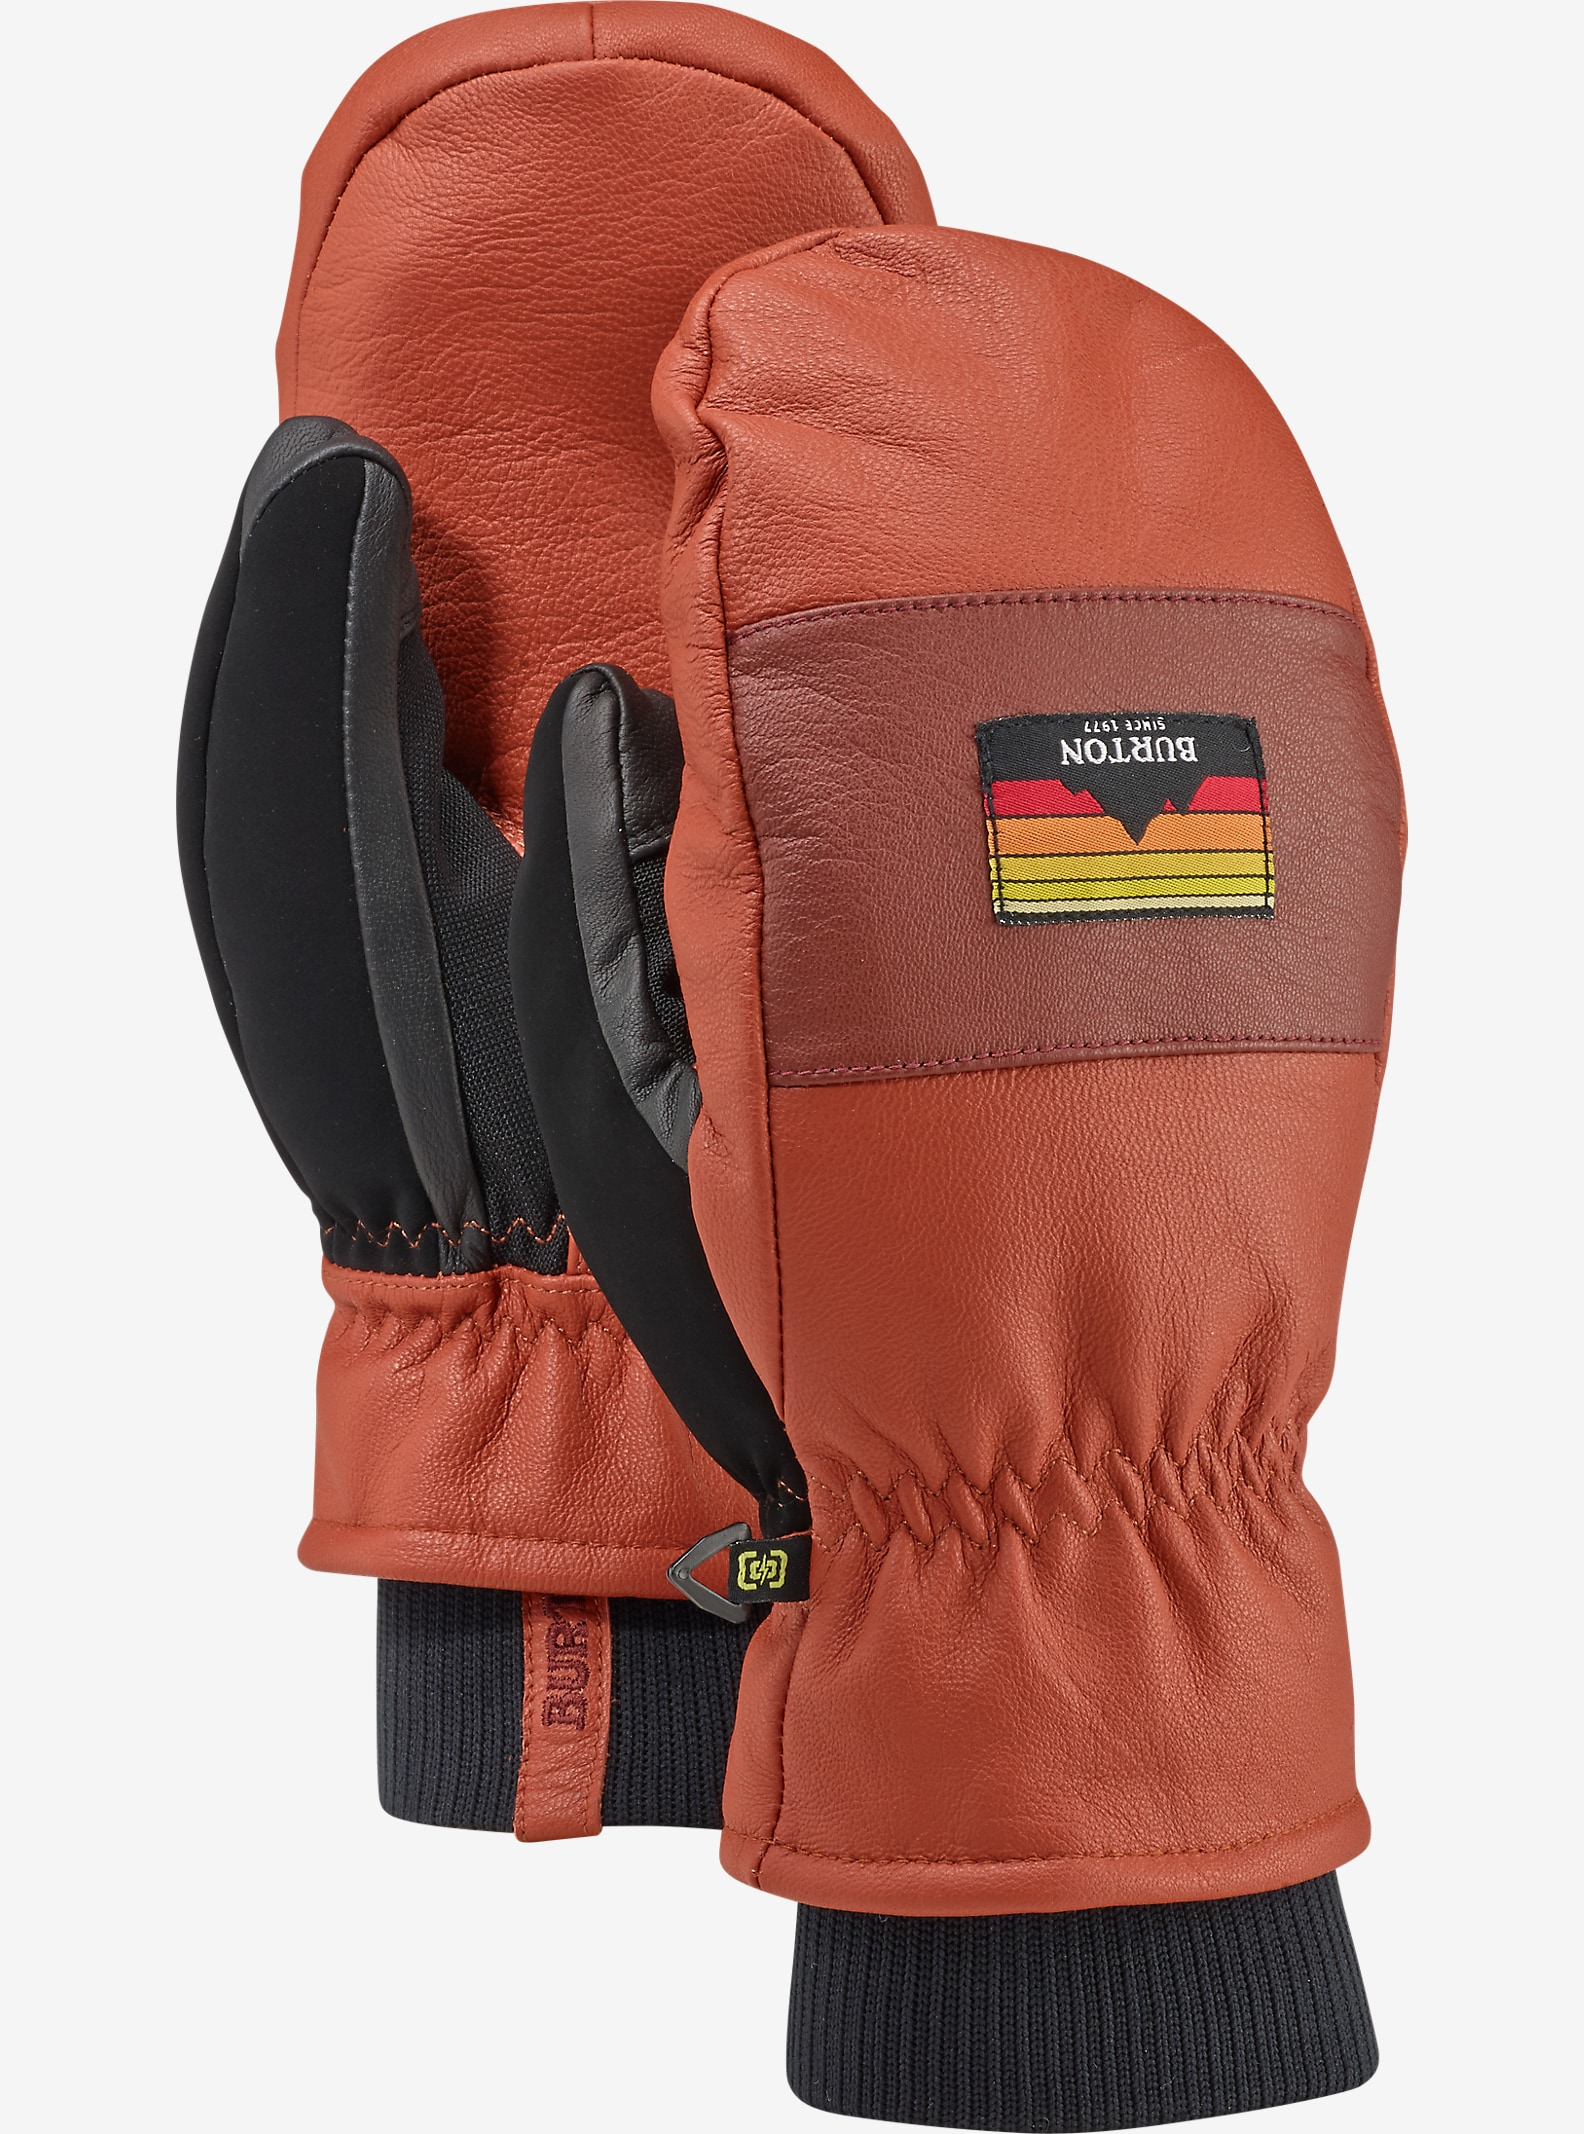 Burton Free Range Mitt shown in Picante